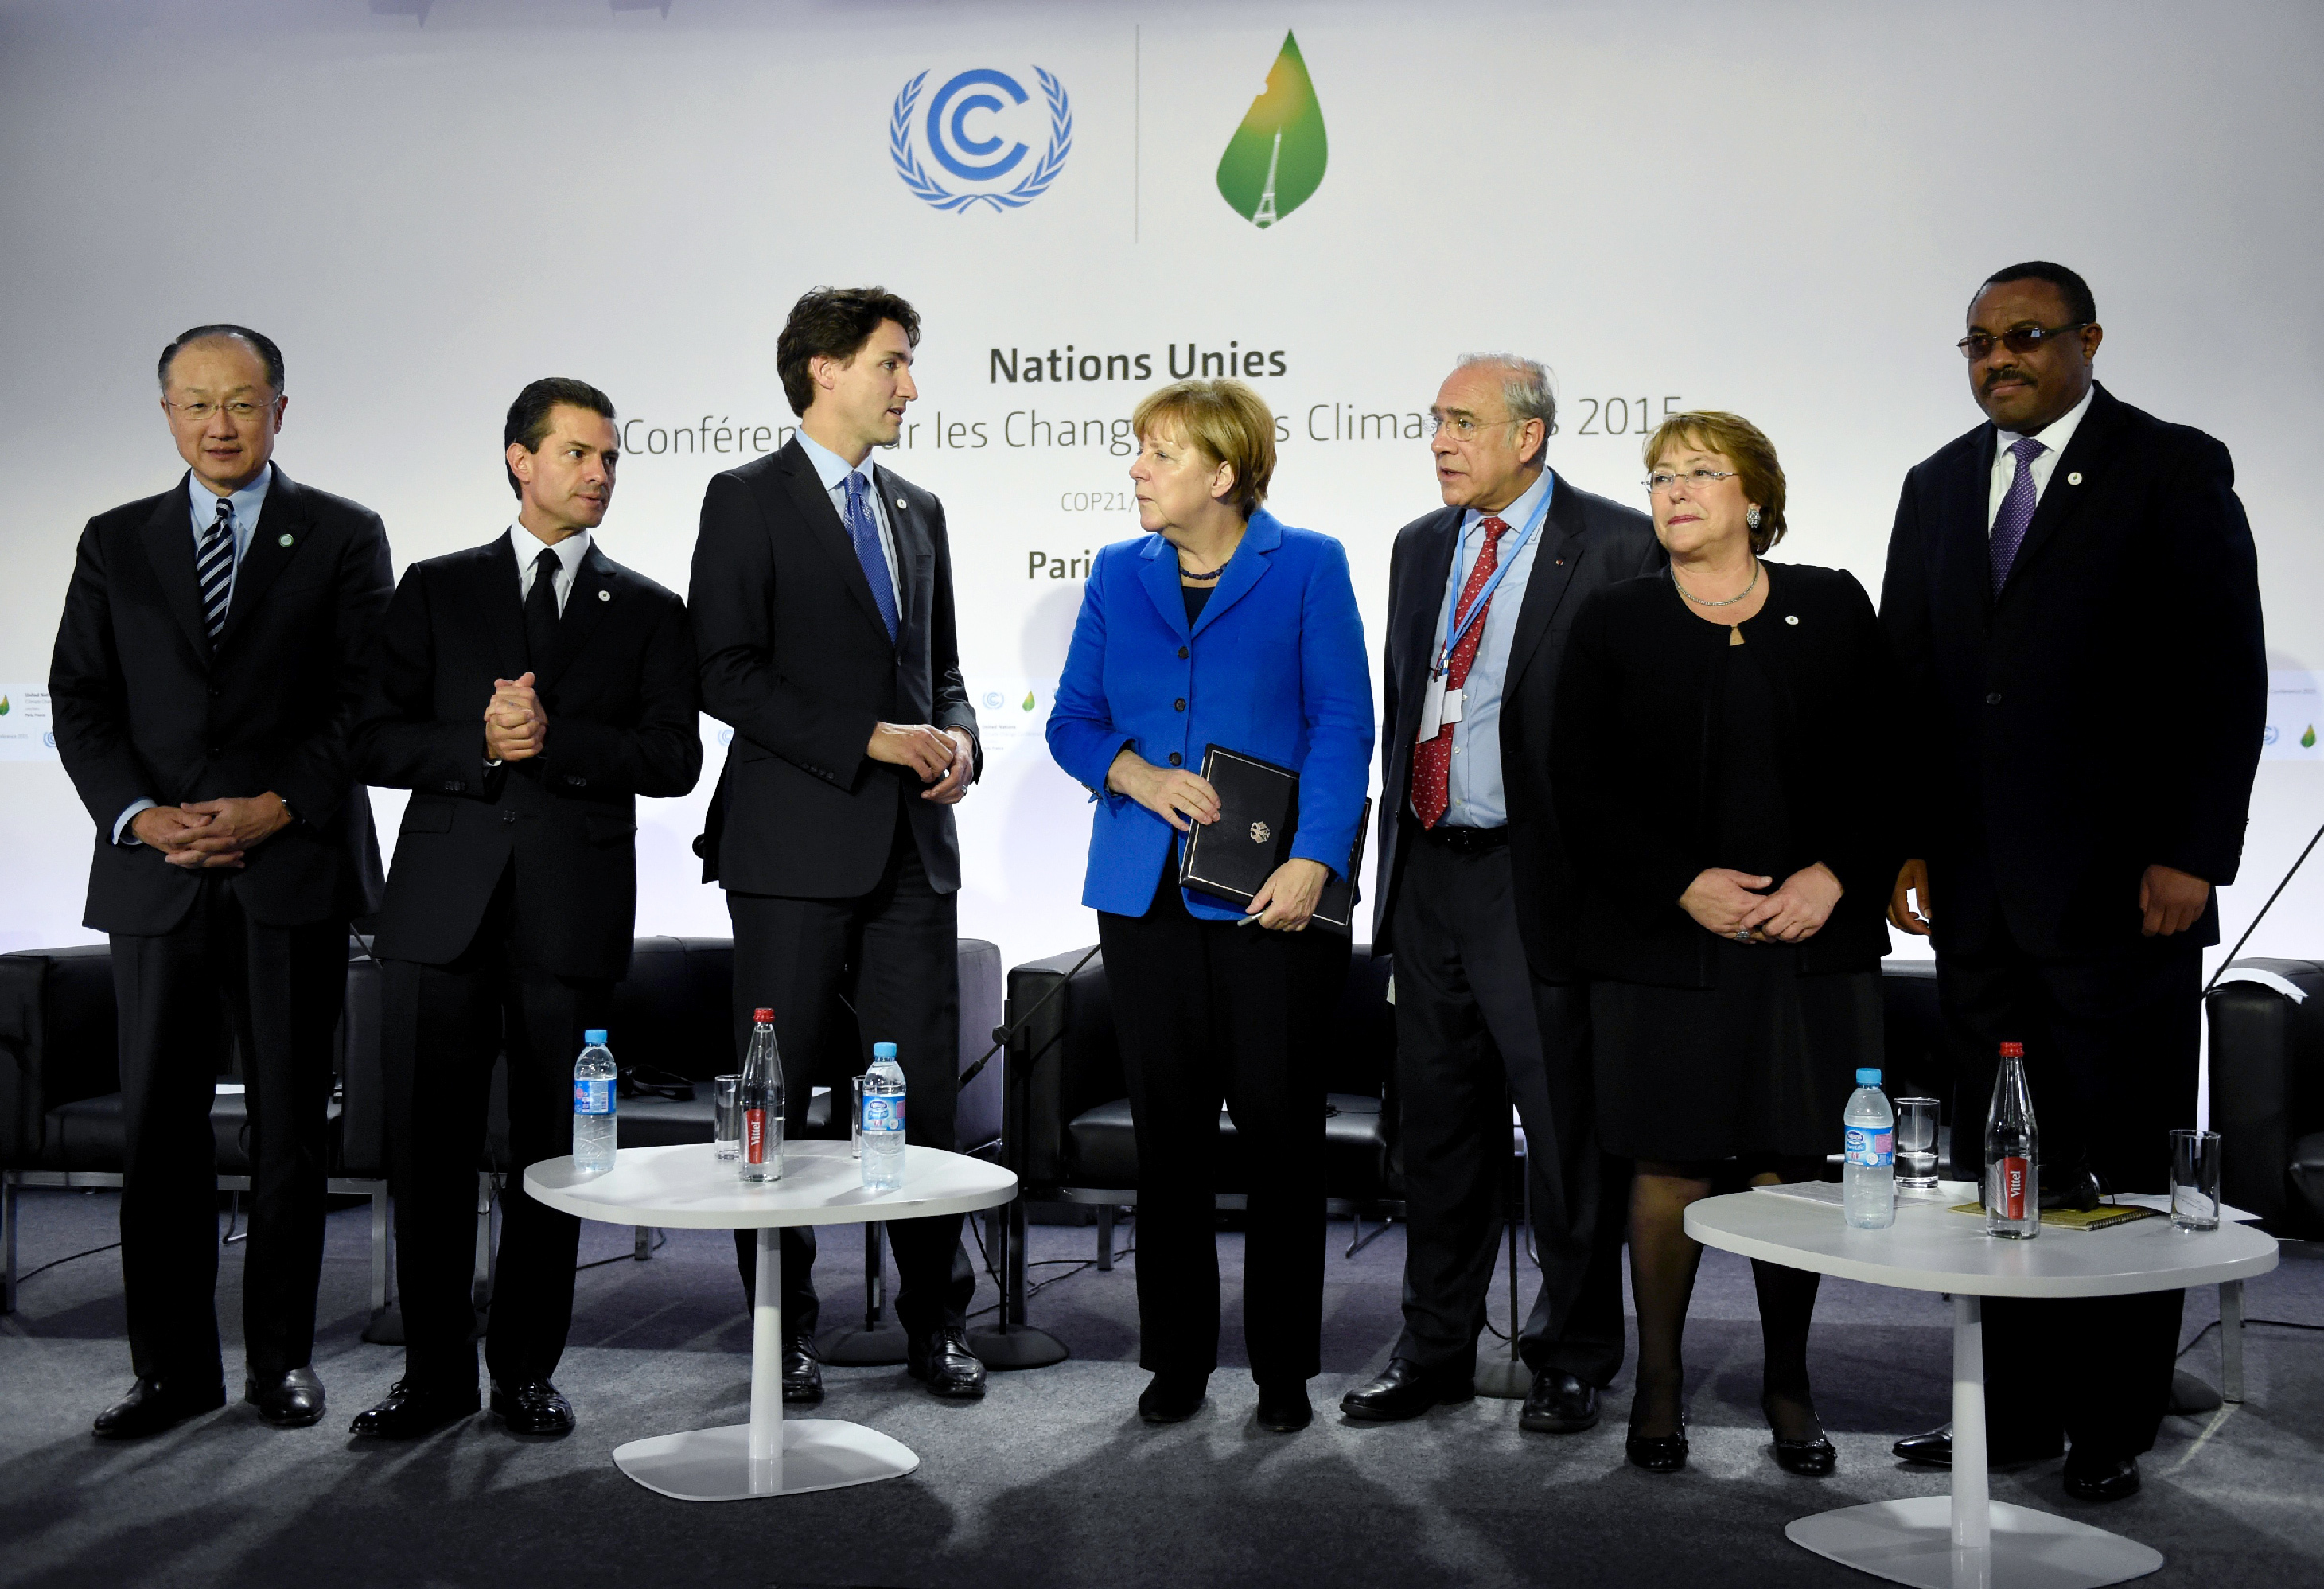 10 Things To Know About The U.N. Climate Talks In Paris